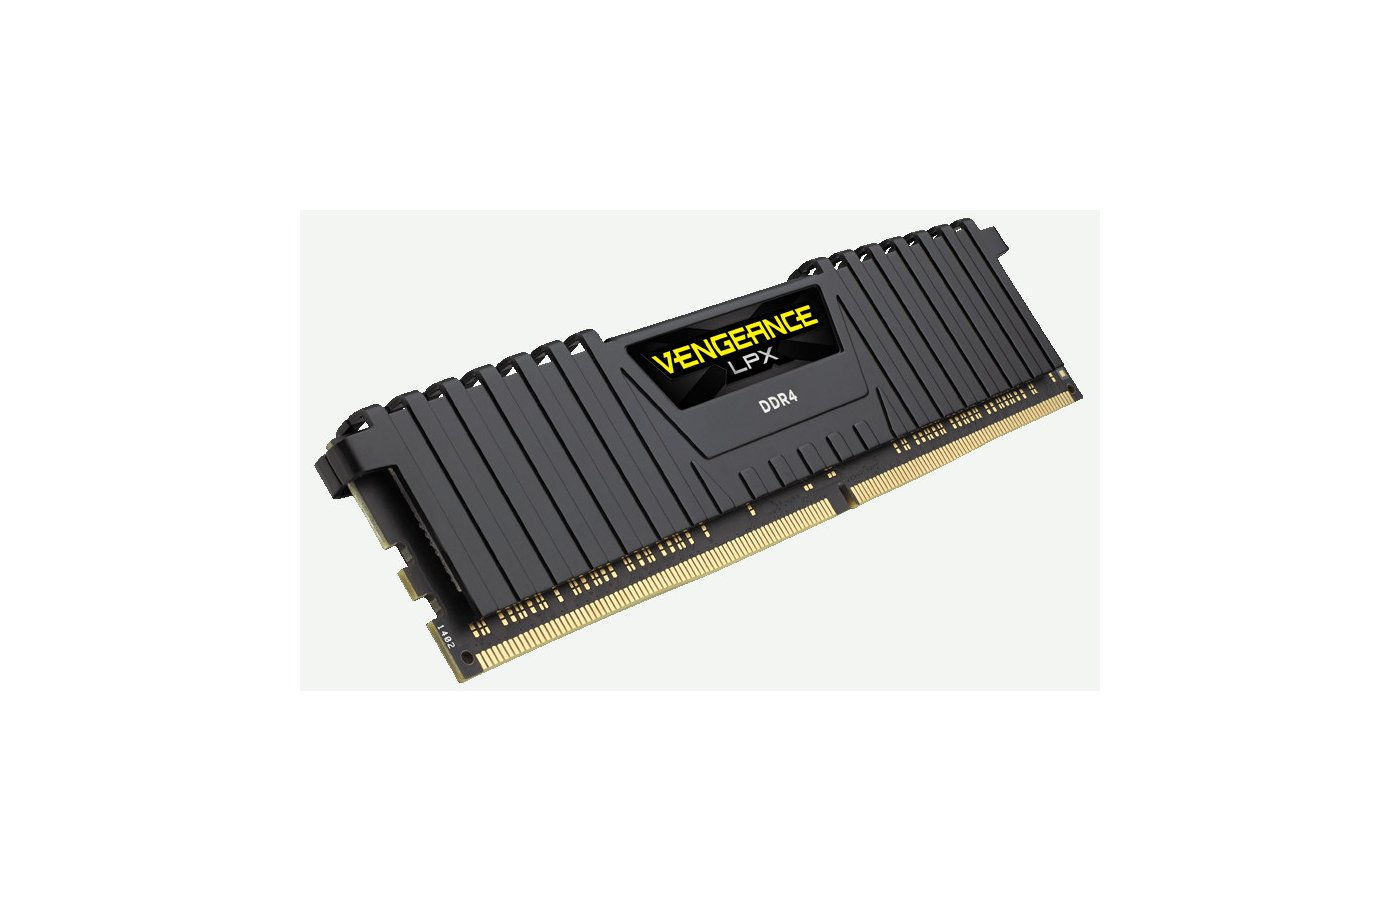 Оперативная память Corsair CMK16GX4M2A2800C16 RTL PC4-22400 DDR4 2x8Gb 2800MHz CL16 DIMM